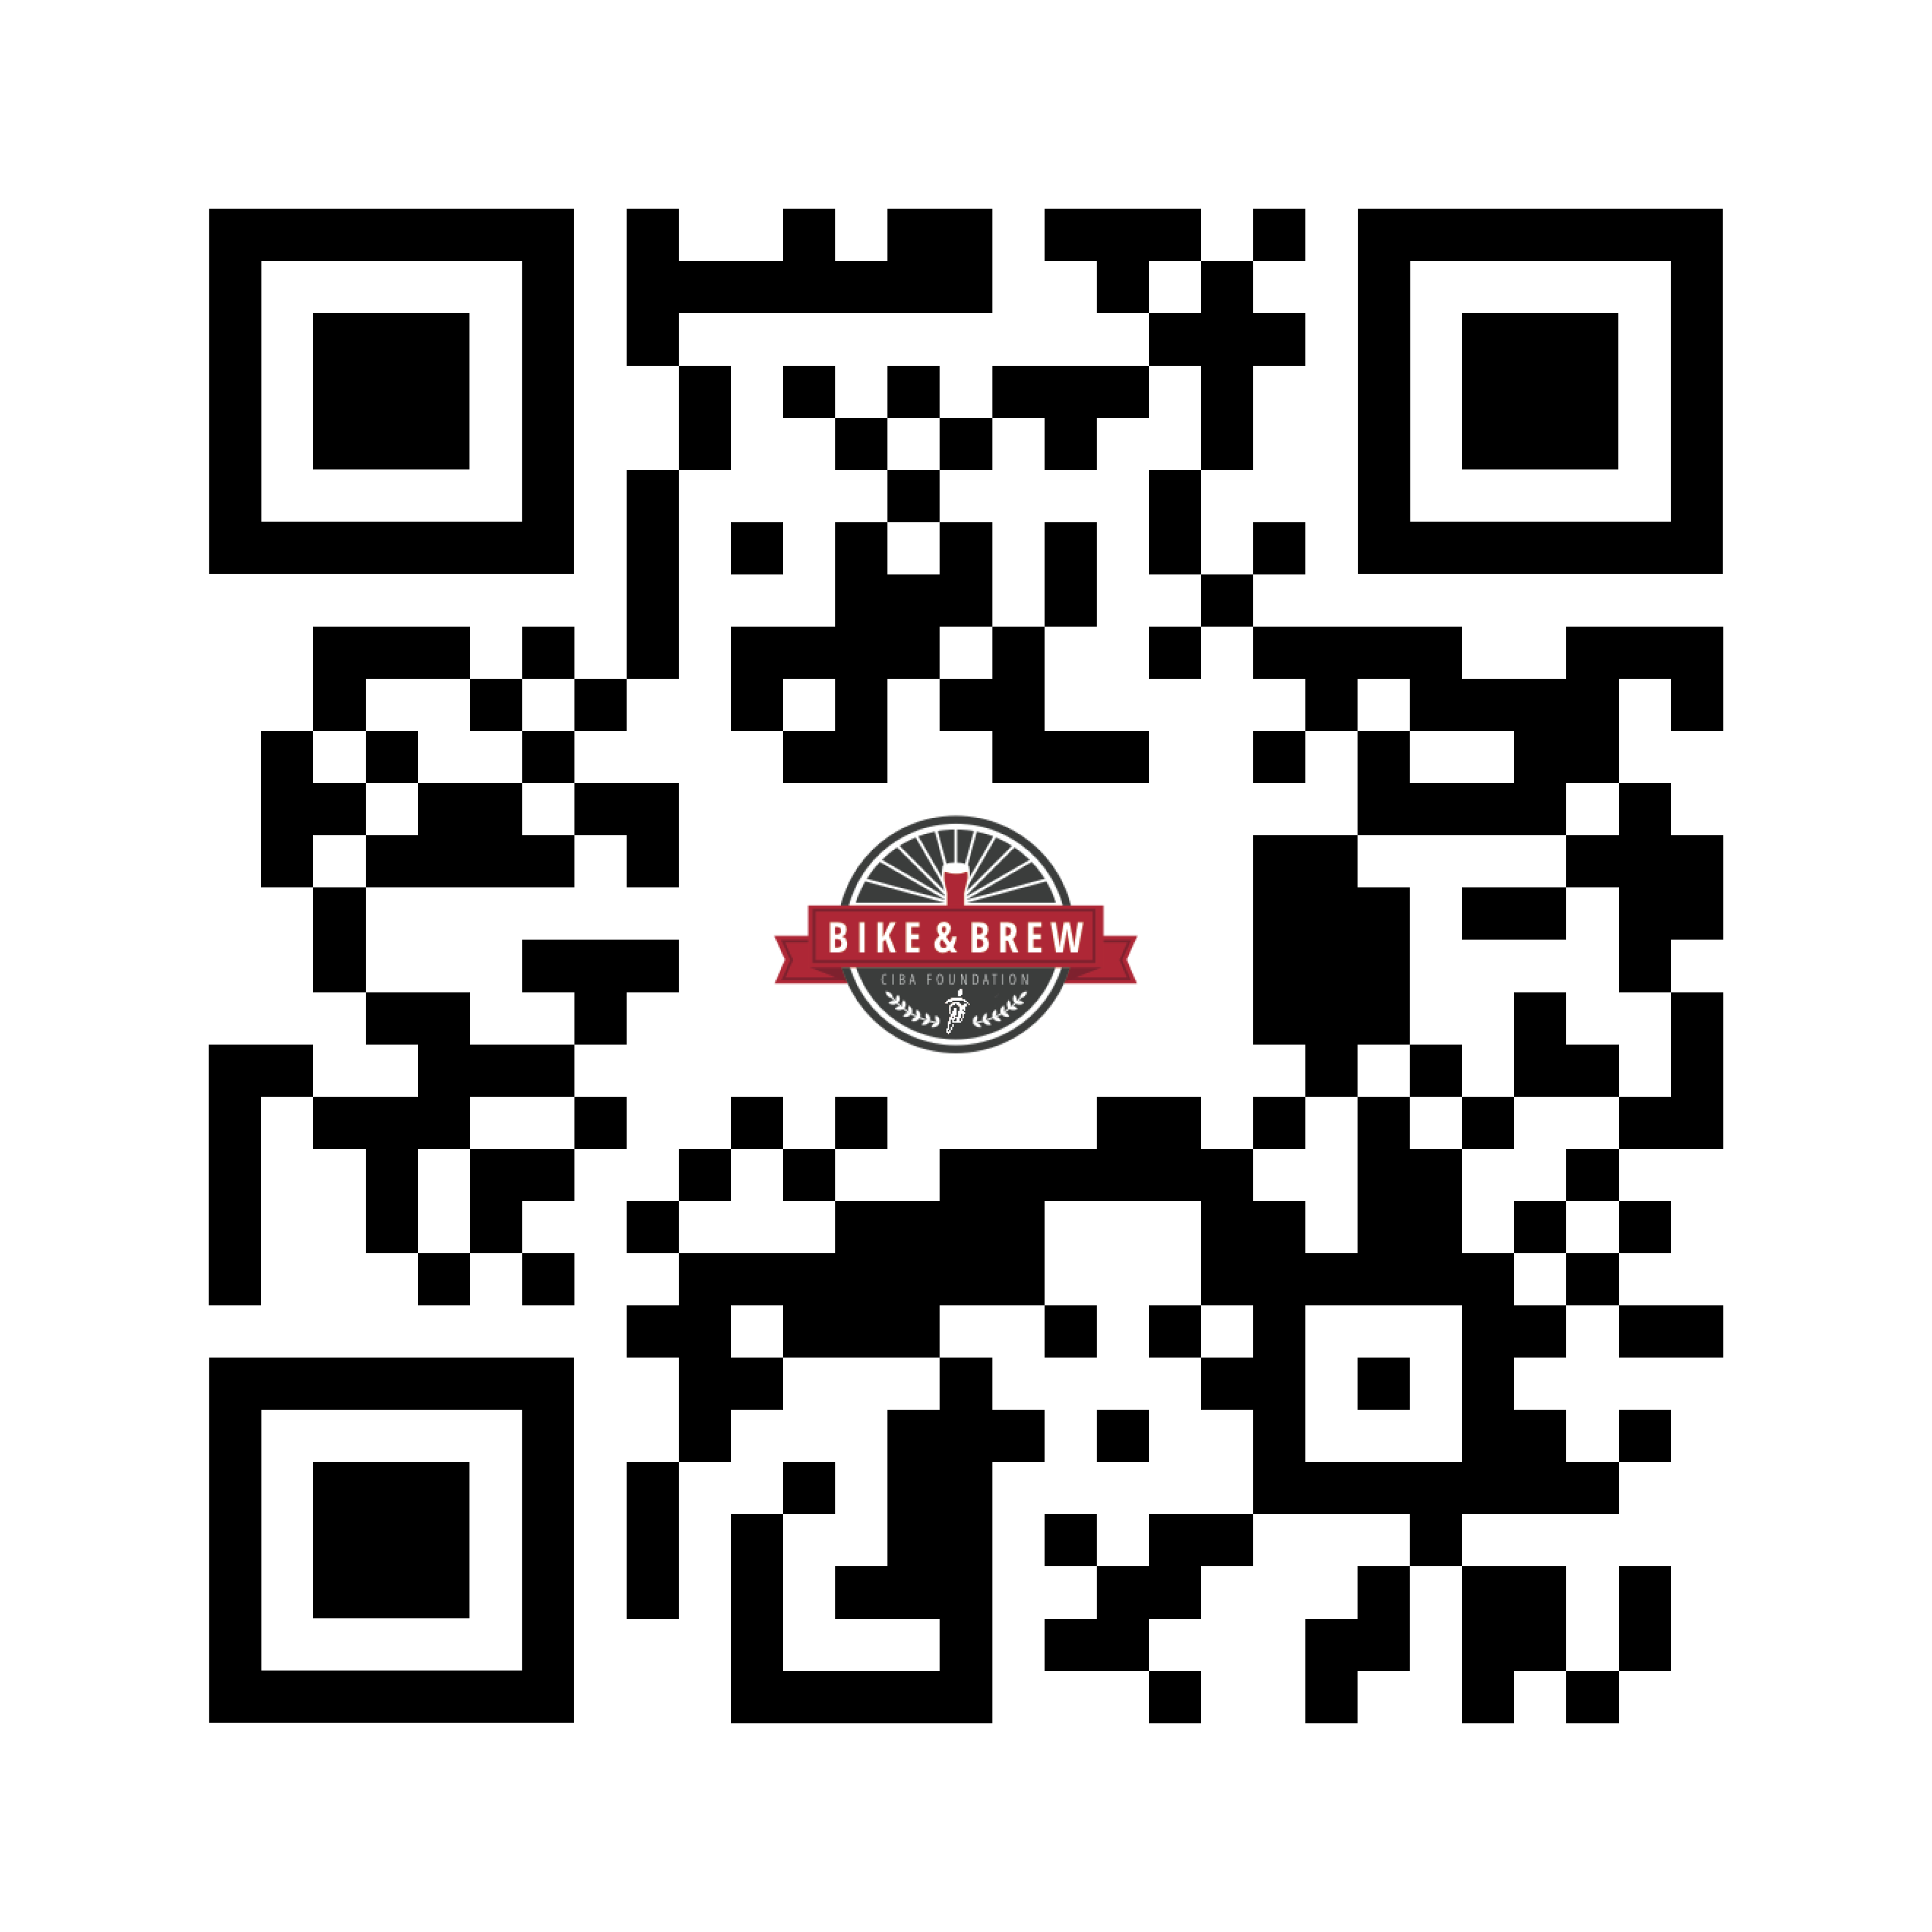 Scan the QR code to add this event to your digital calendars